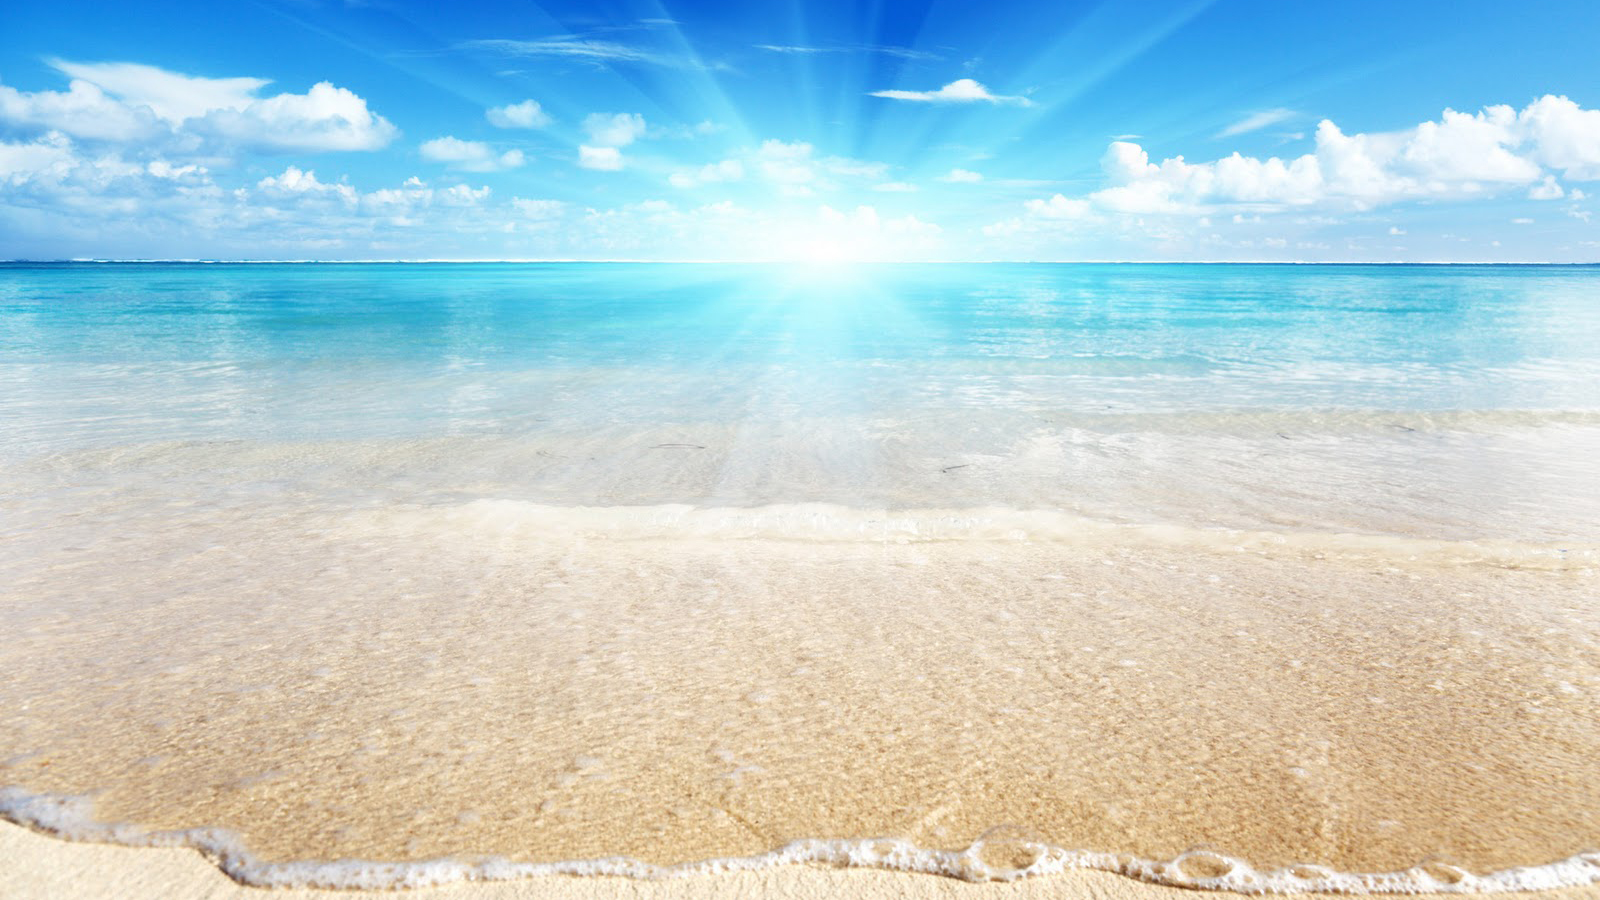 Beach Sunshine Windows 81 Theme   ThemeWallpaperscom 1600x900